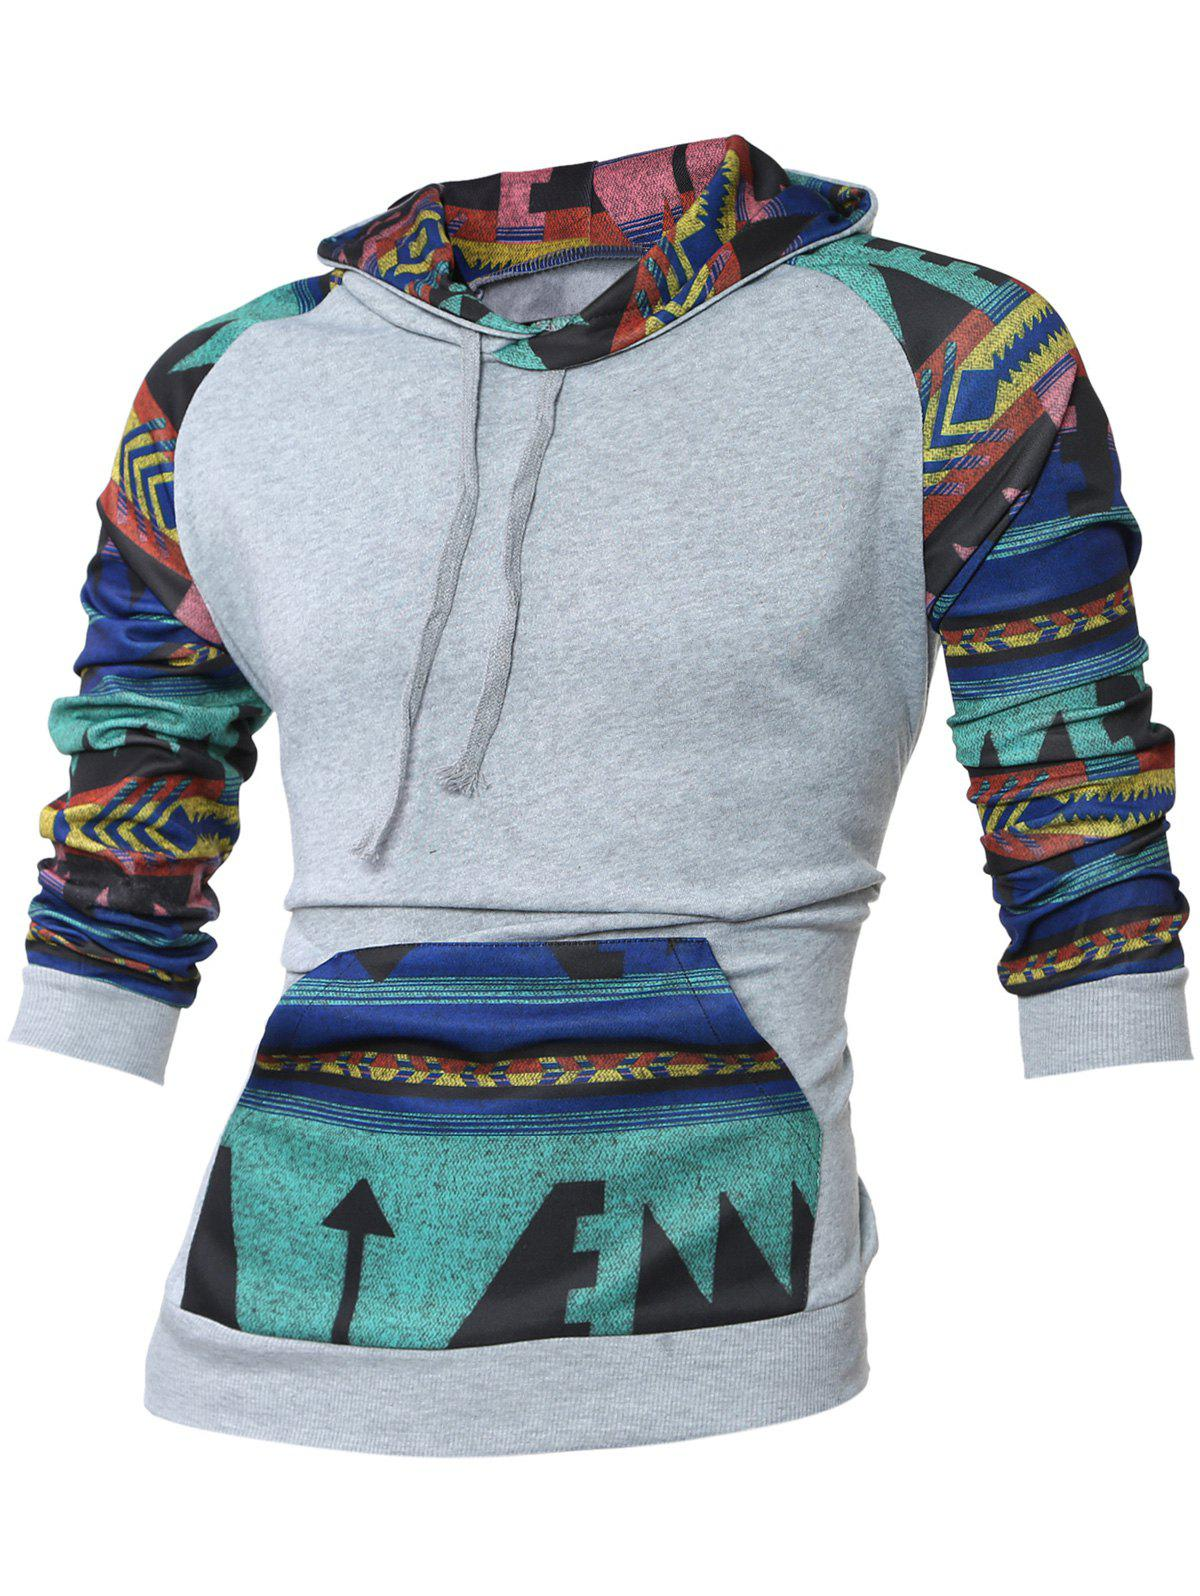 Kangaroo Pocket Raglan Sleeve Tribal Print Hoodie - LIGHT GRAY M